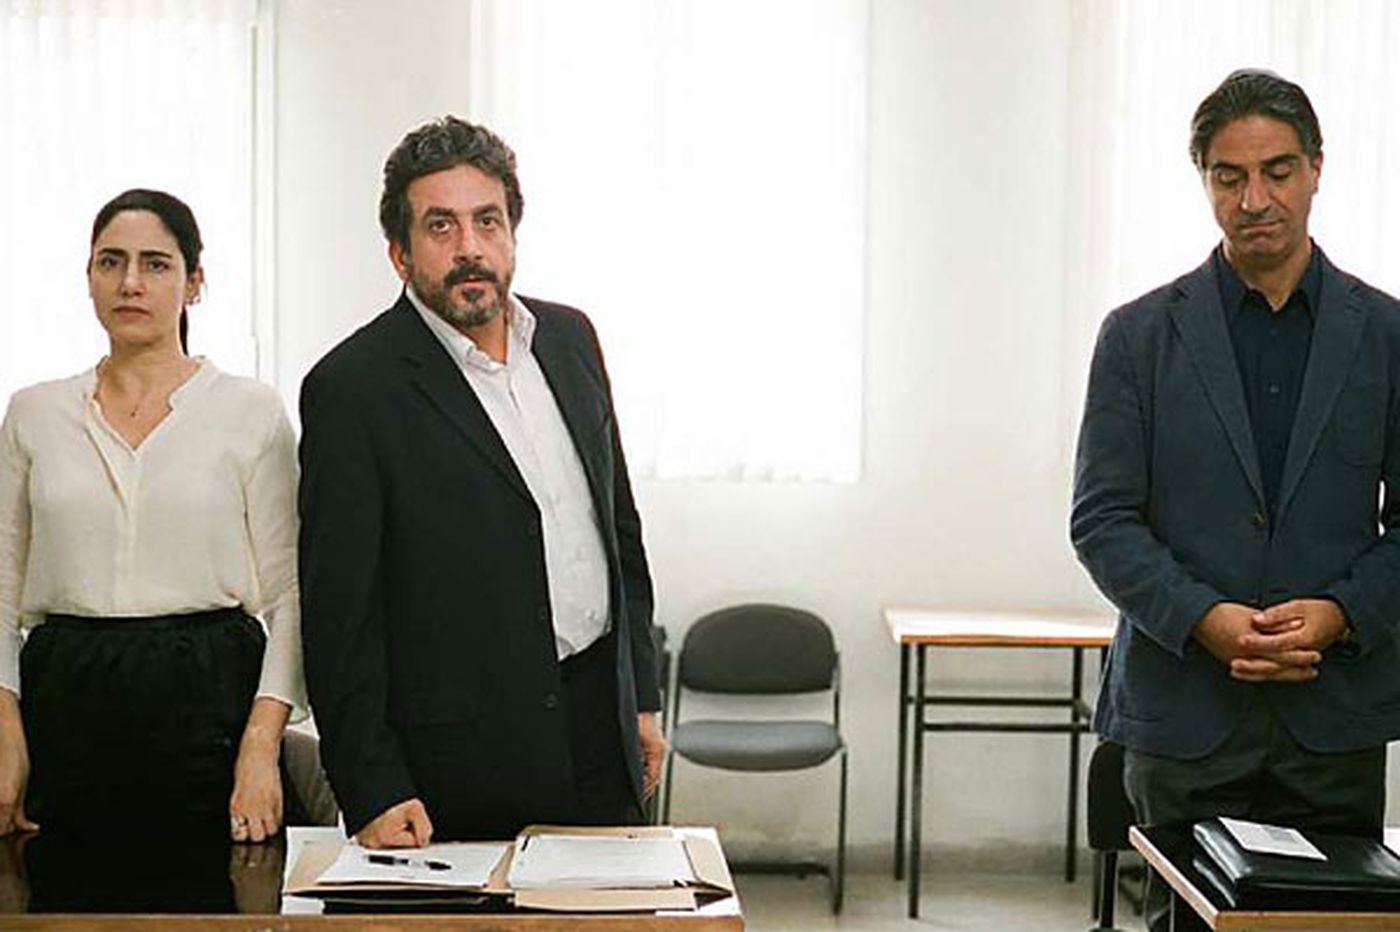 Review: 'Gett' a surprisingly gripping courtroom drama